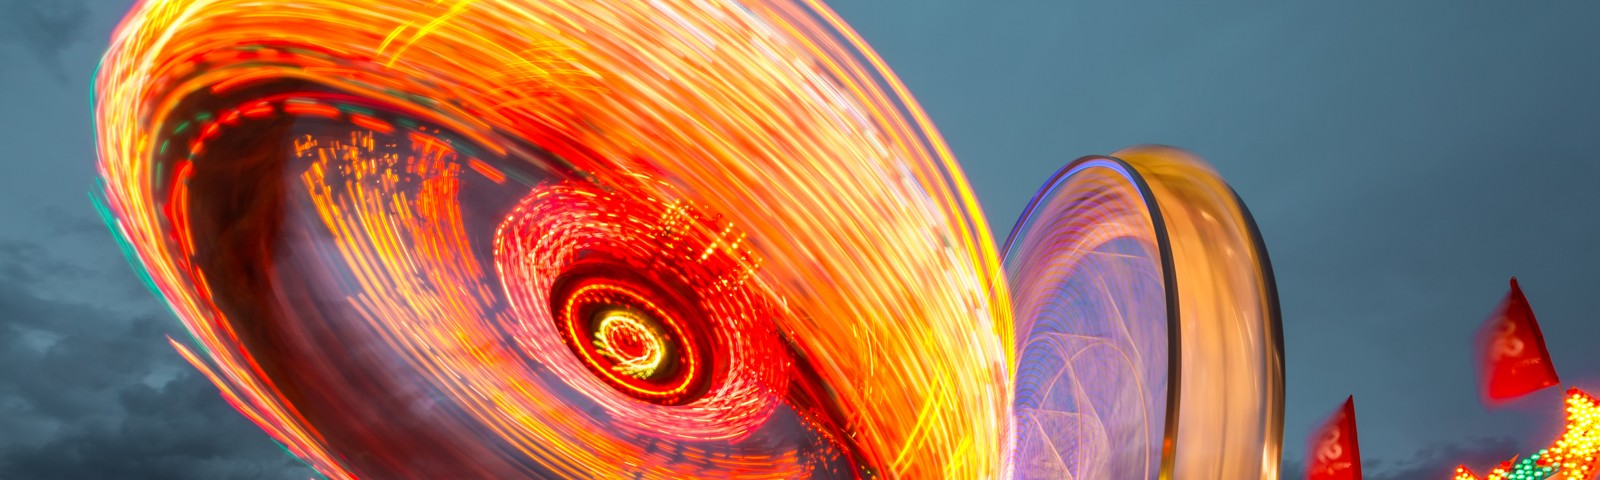 two Ferris wheels photographed with a slow shutter speed to produce a blur of lights